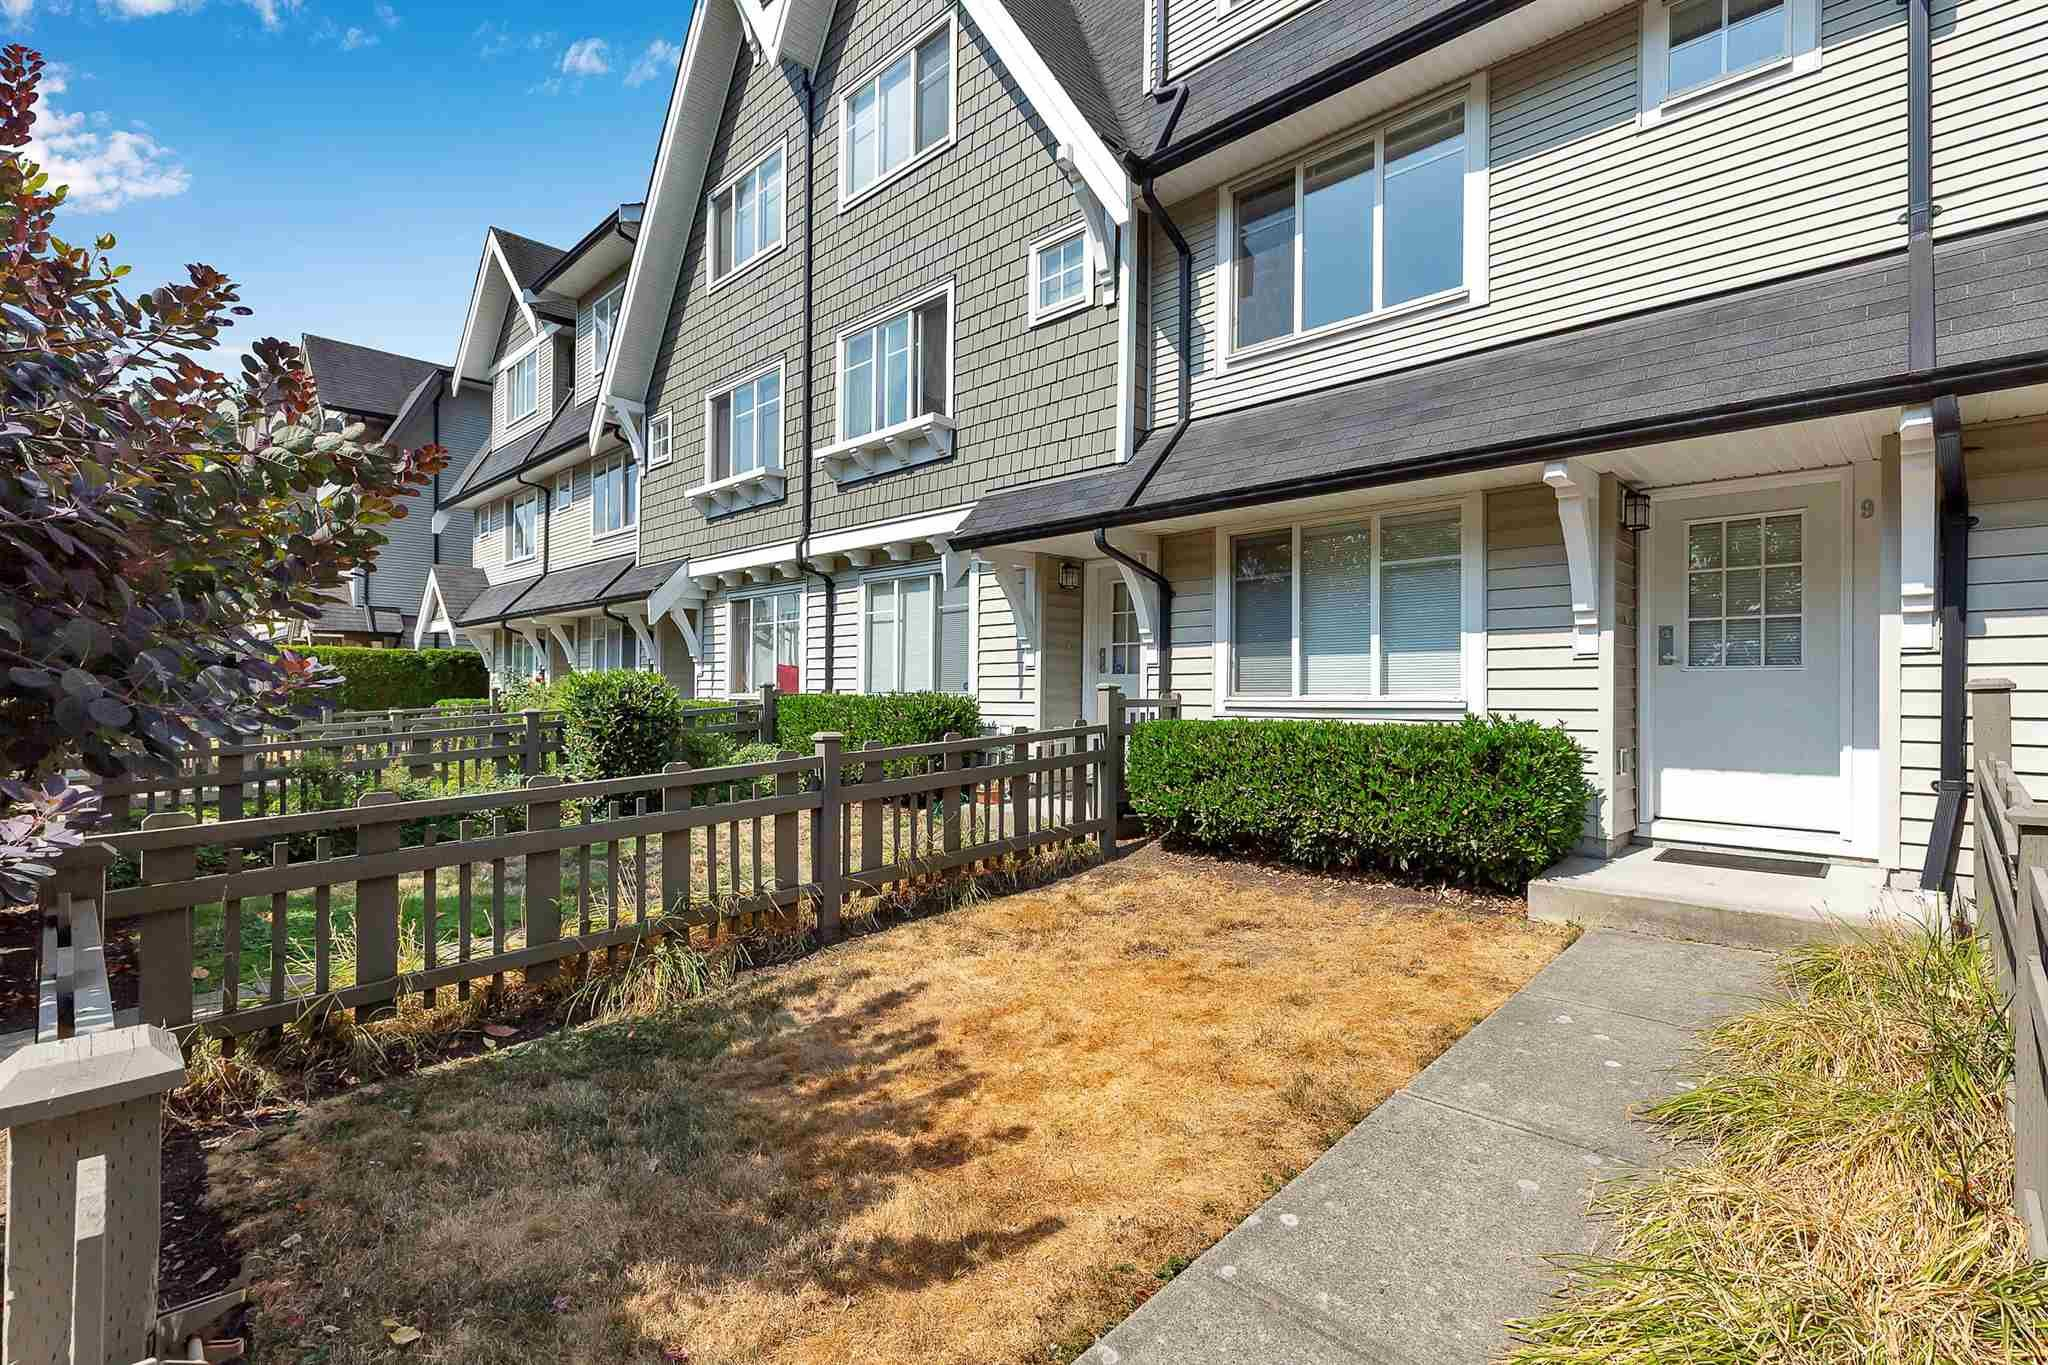 """Photo 3: Photos: 9 15871 85 Avenue in Surrey: Fleetwood Tynehead Townhouse for sale in """"Huckleberry"""" : MLS®# R2606668"""